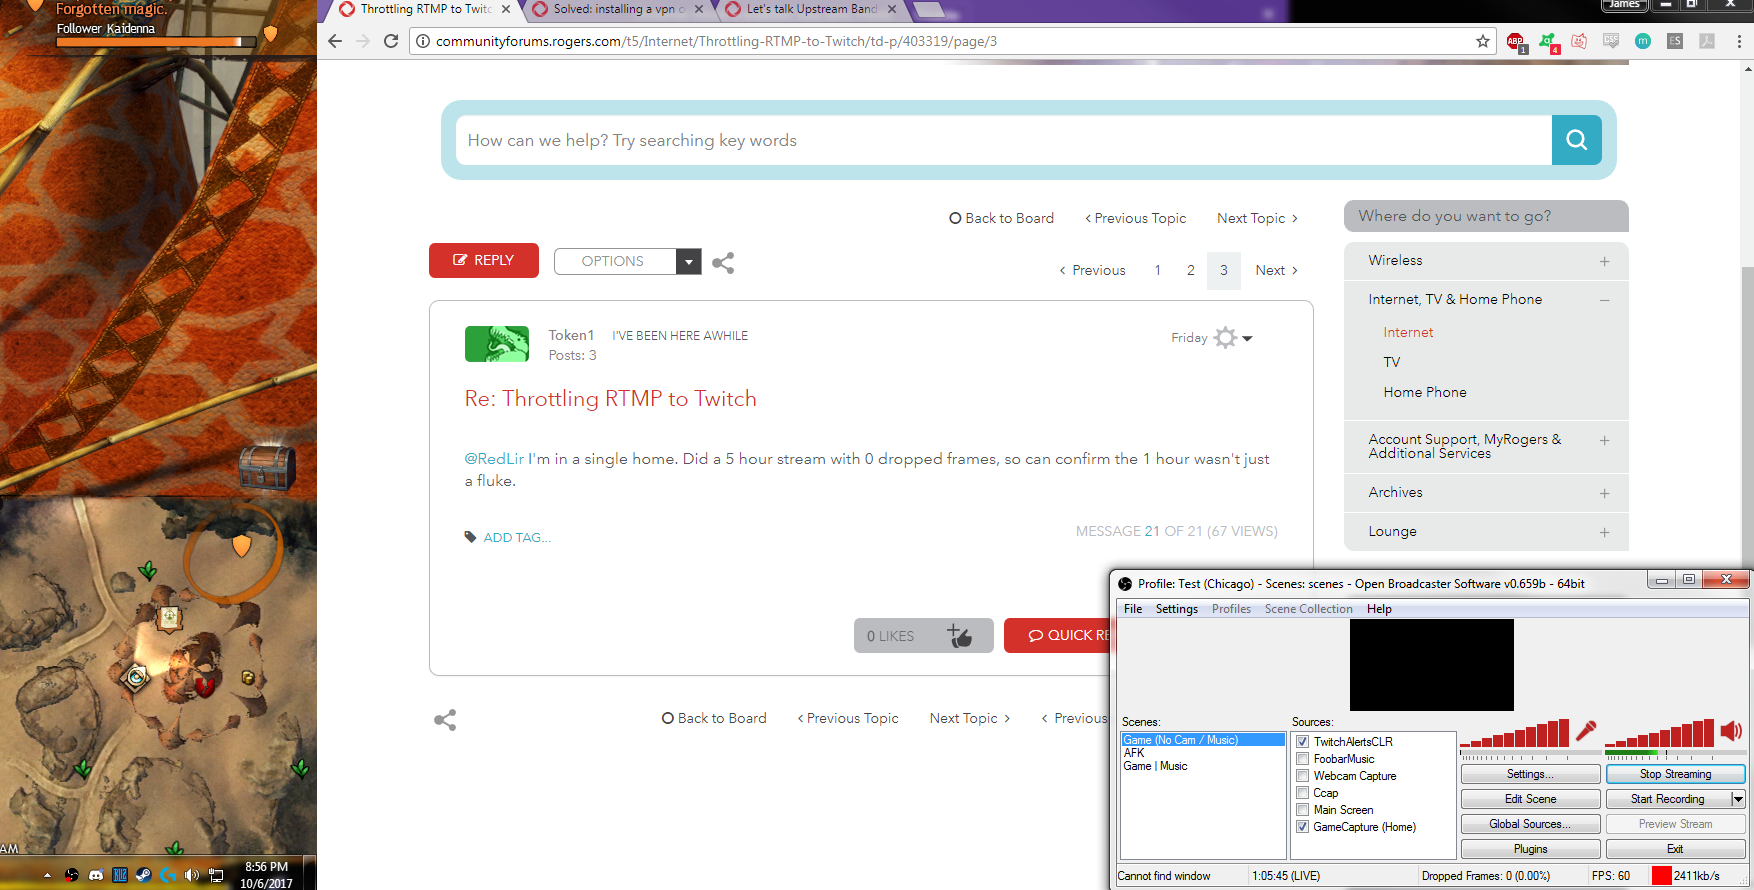 Throttling RTMP to Twitch - Page 9 - Rogers Community